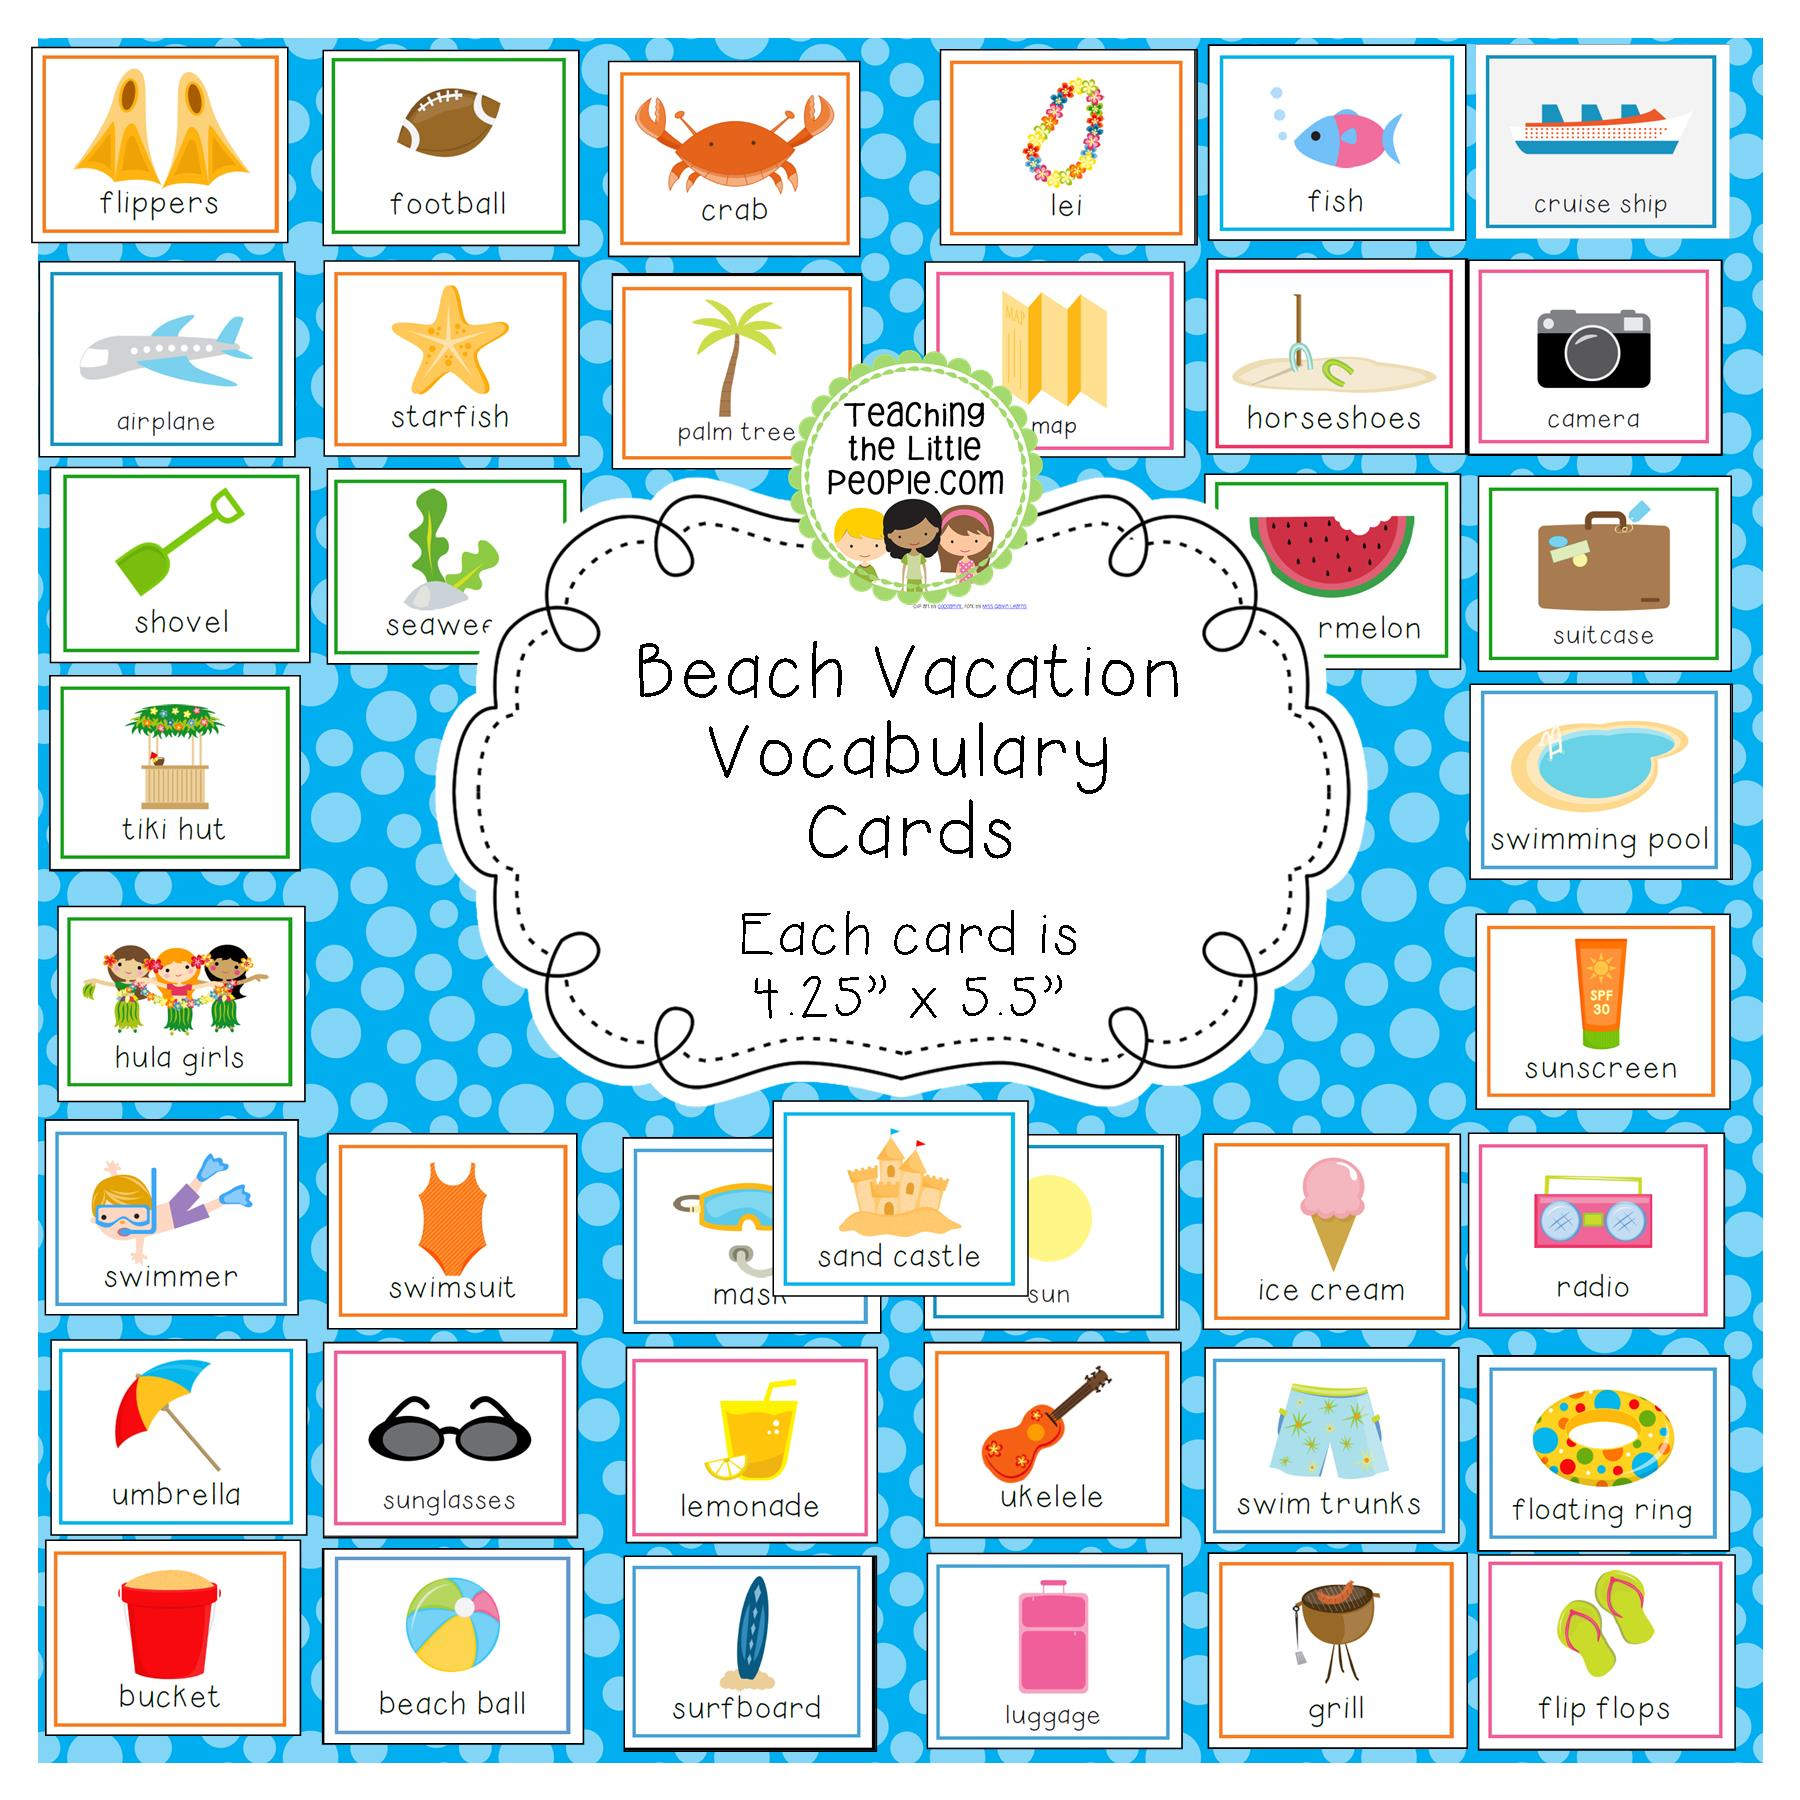 Beach Vacation Vocabulary Cards for Preschool and Kindergarten Image